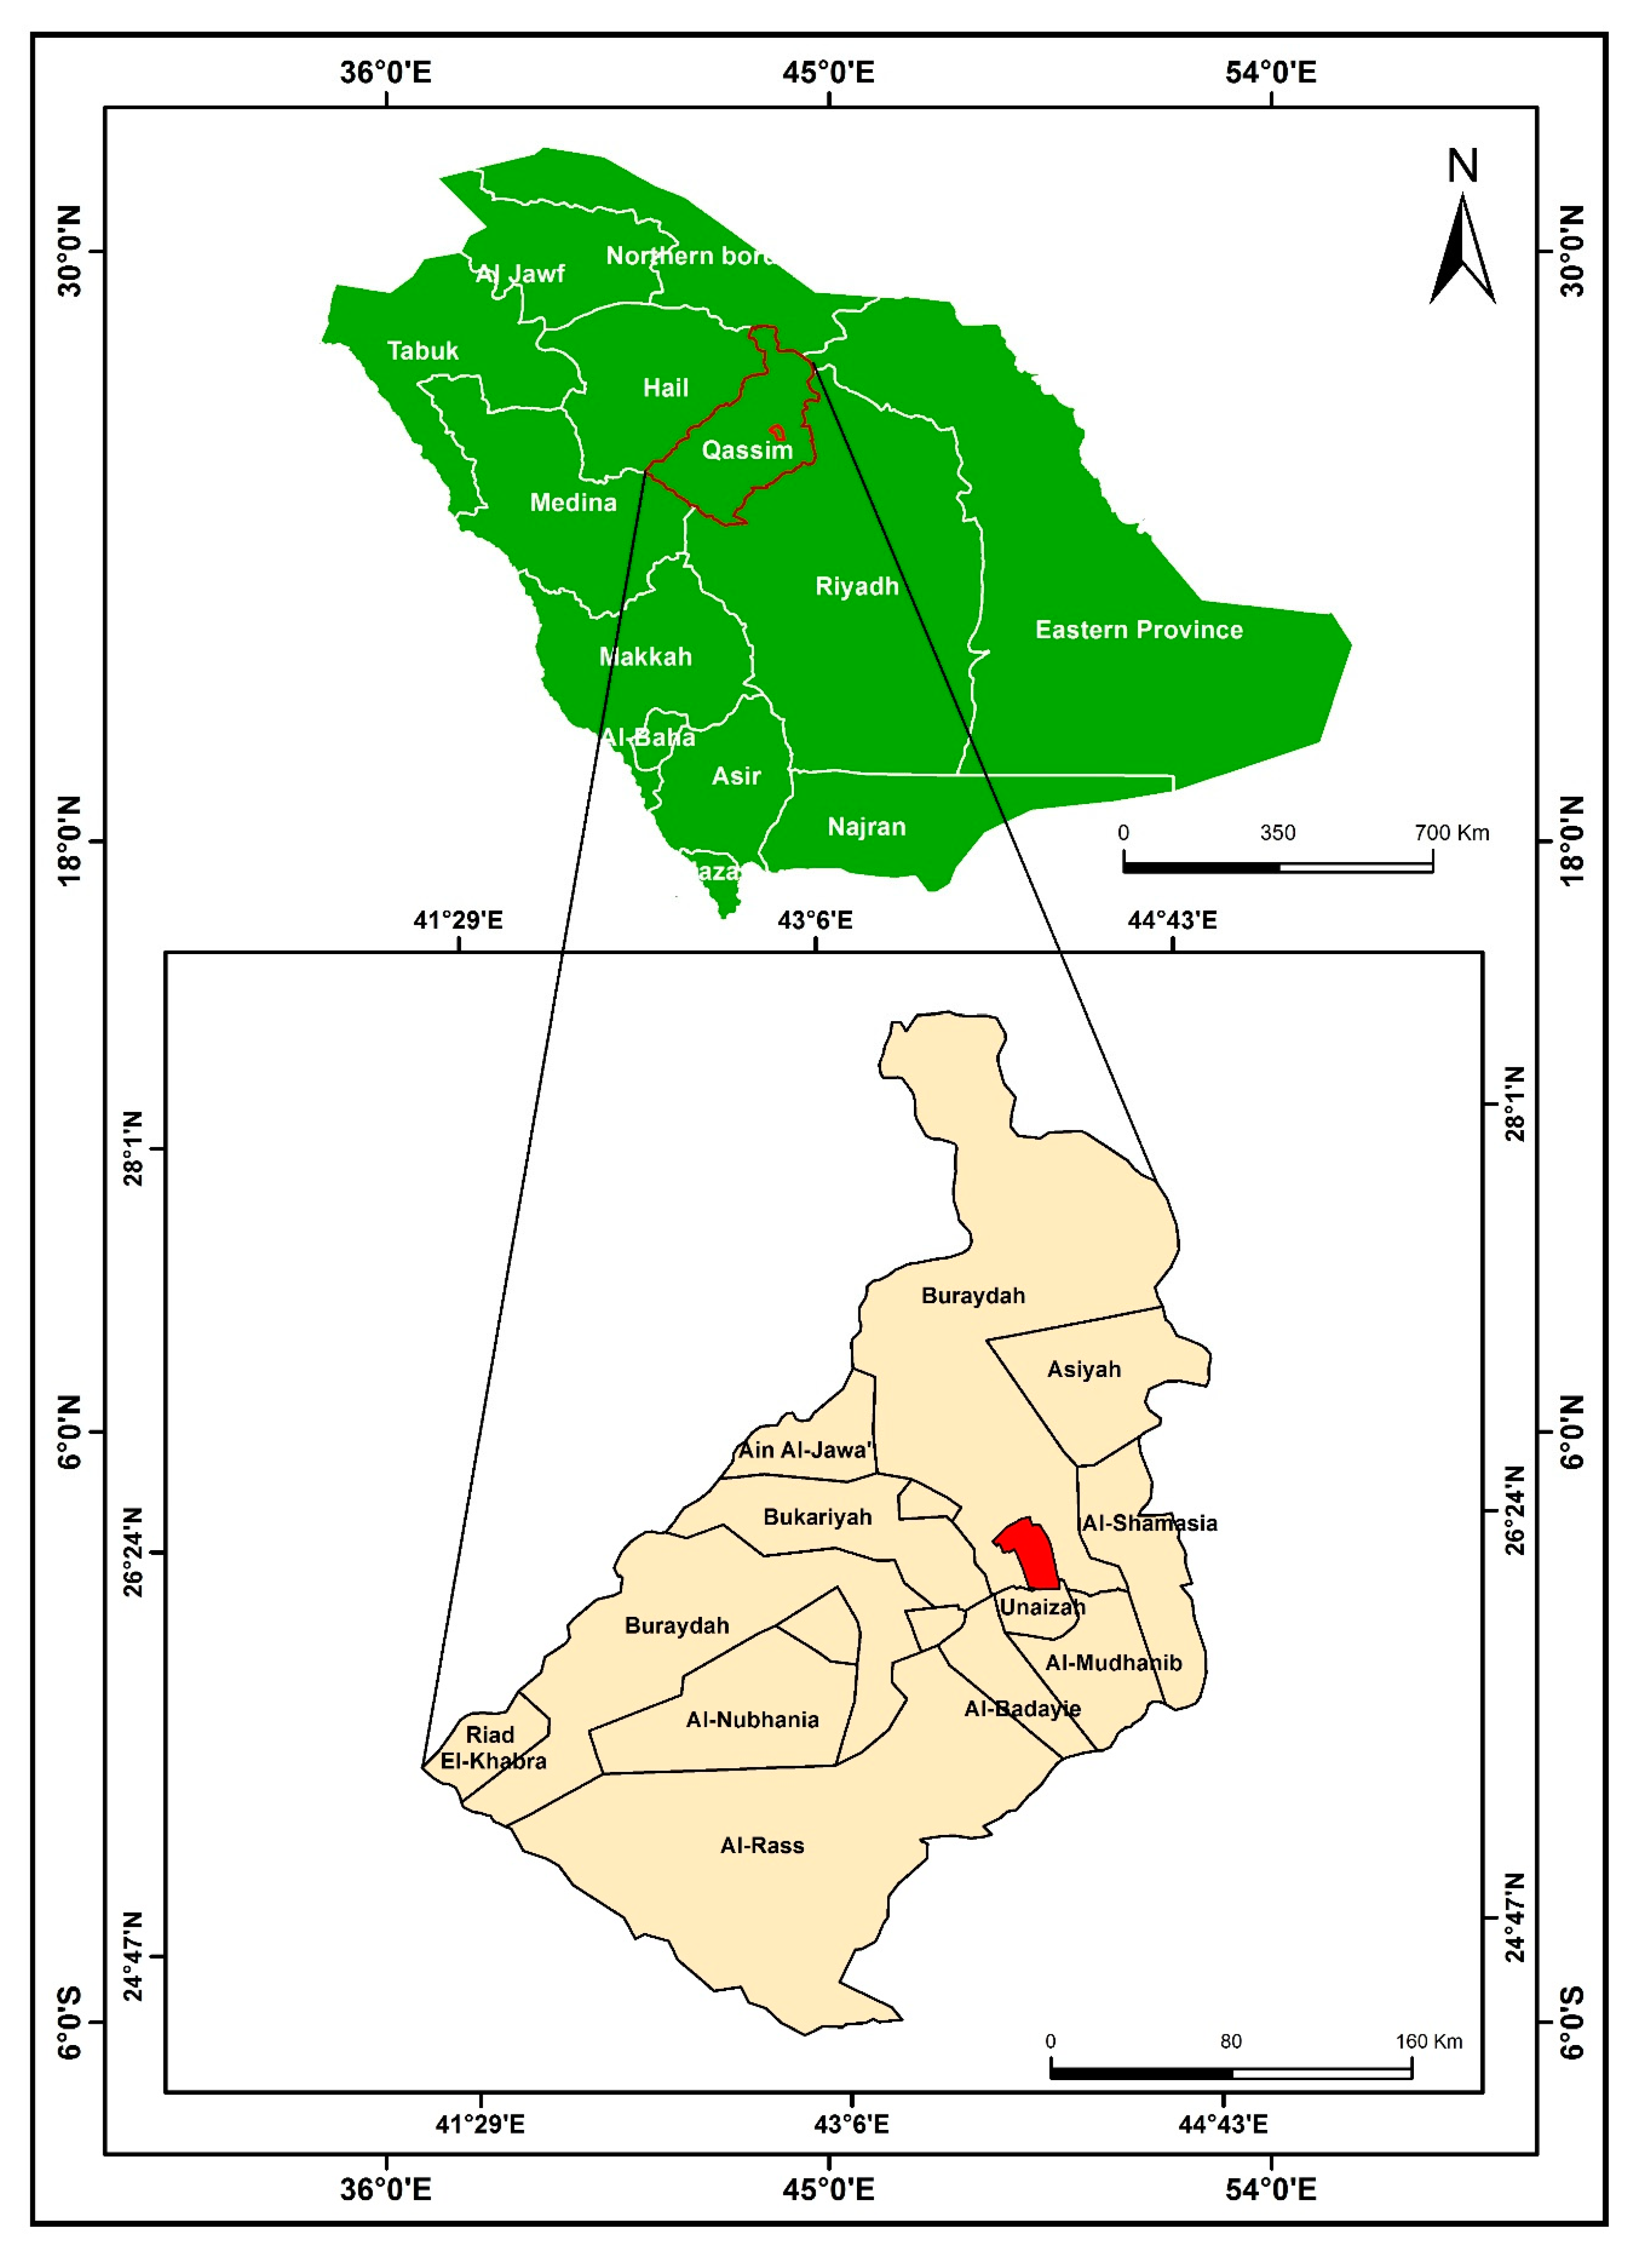 Sustainability Free Full Text Integrating Gis Accessibility And Location Allocation Models With Multicriteria Decision Analysis For Evaluating Quality Of Life In Buraidah City Ksa Html